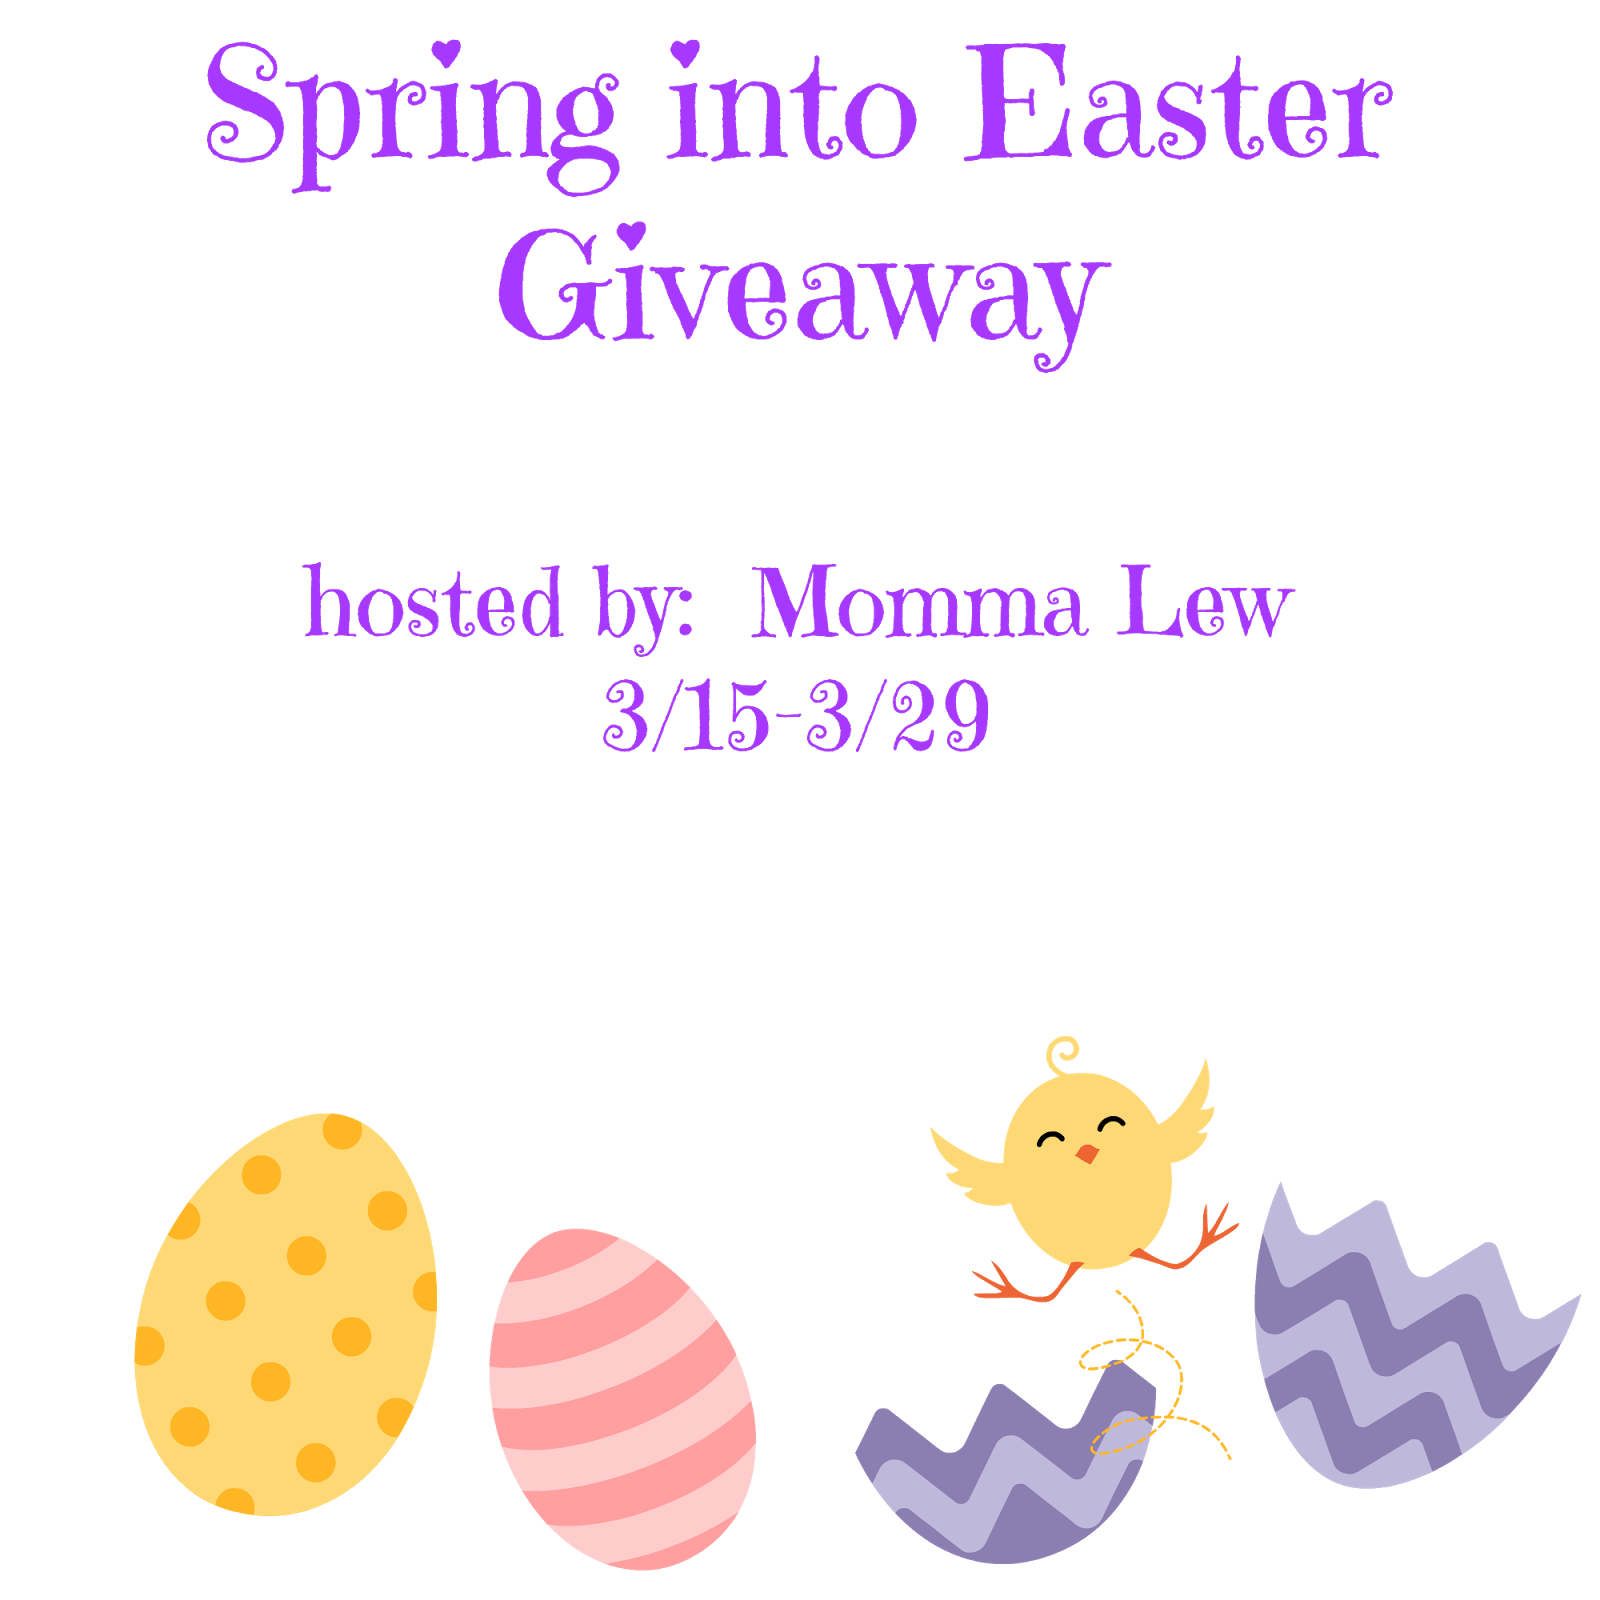 Spring into Easter Giveaway 3/15-3/29 (Mommy Knows What's Best)